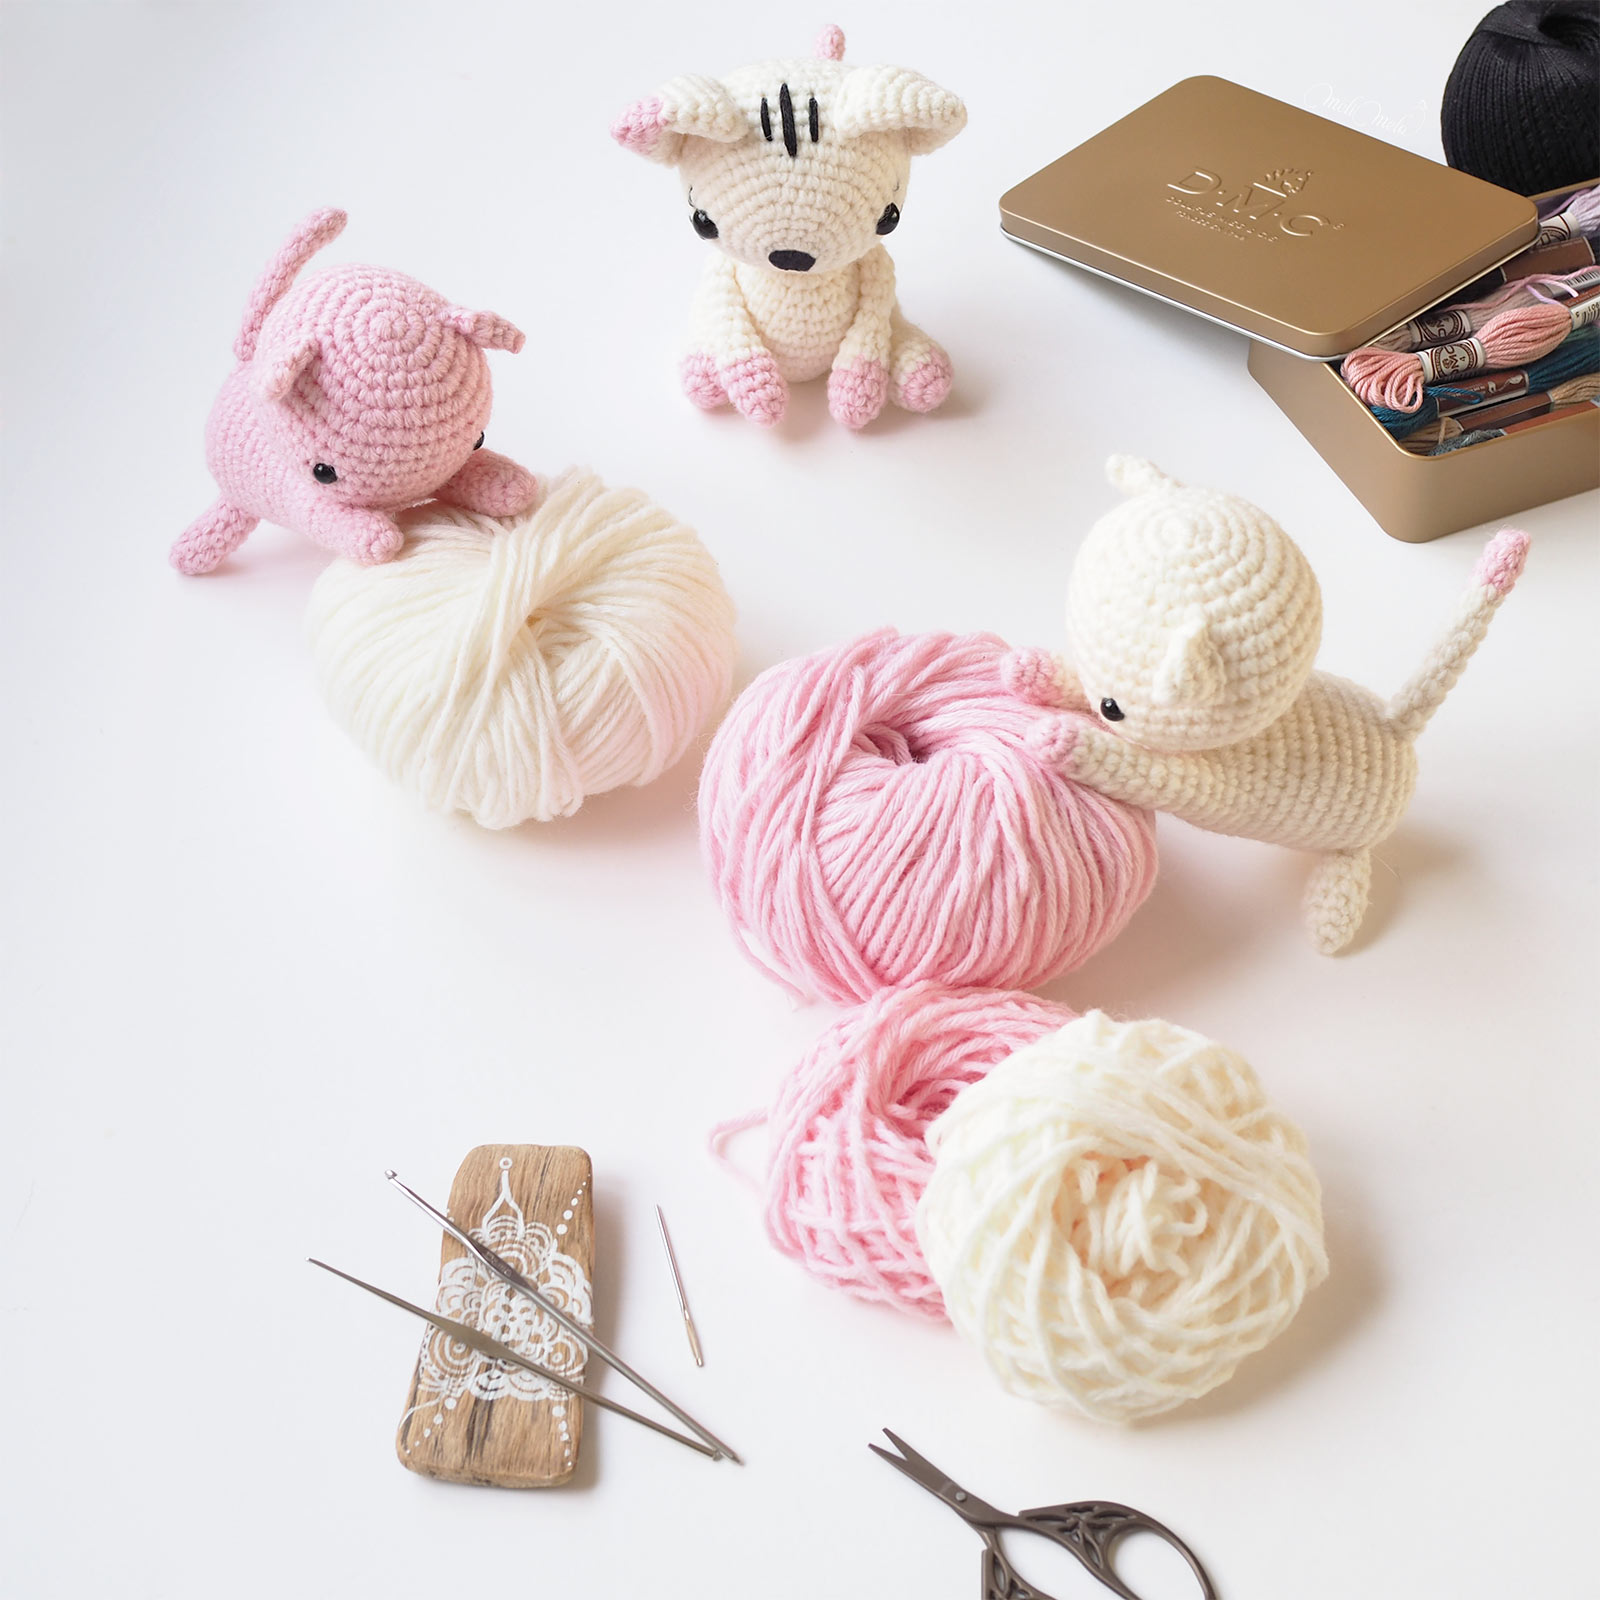 famille chachat crochet créations encours laboutiquedemelimelo